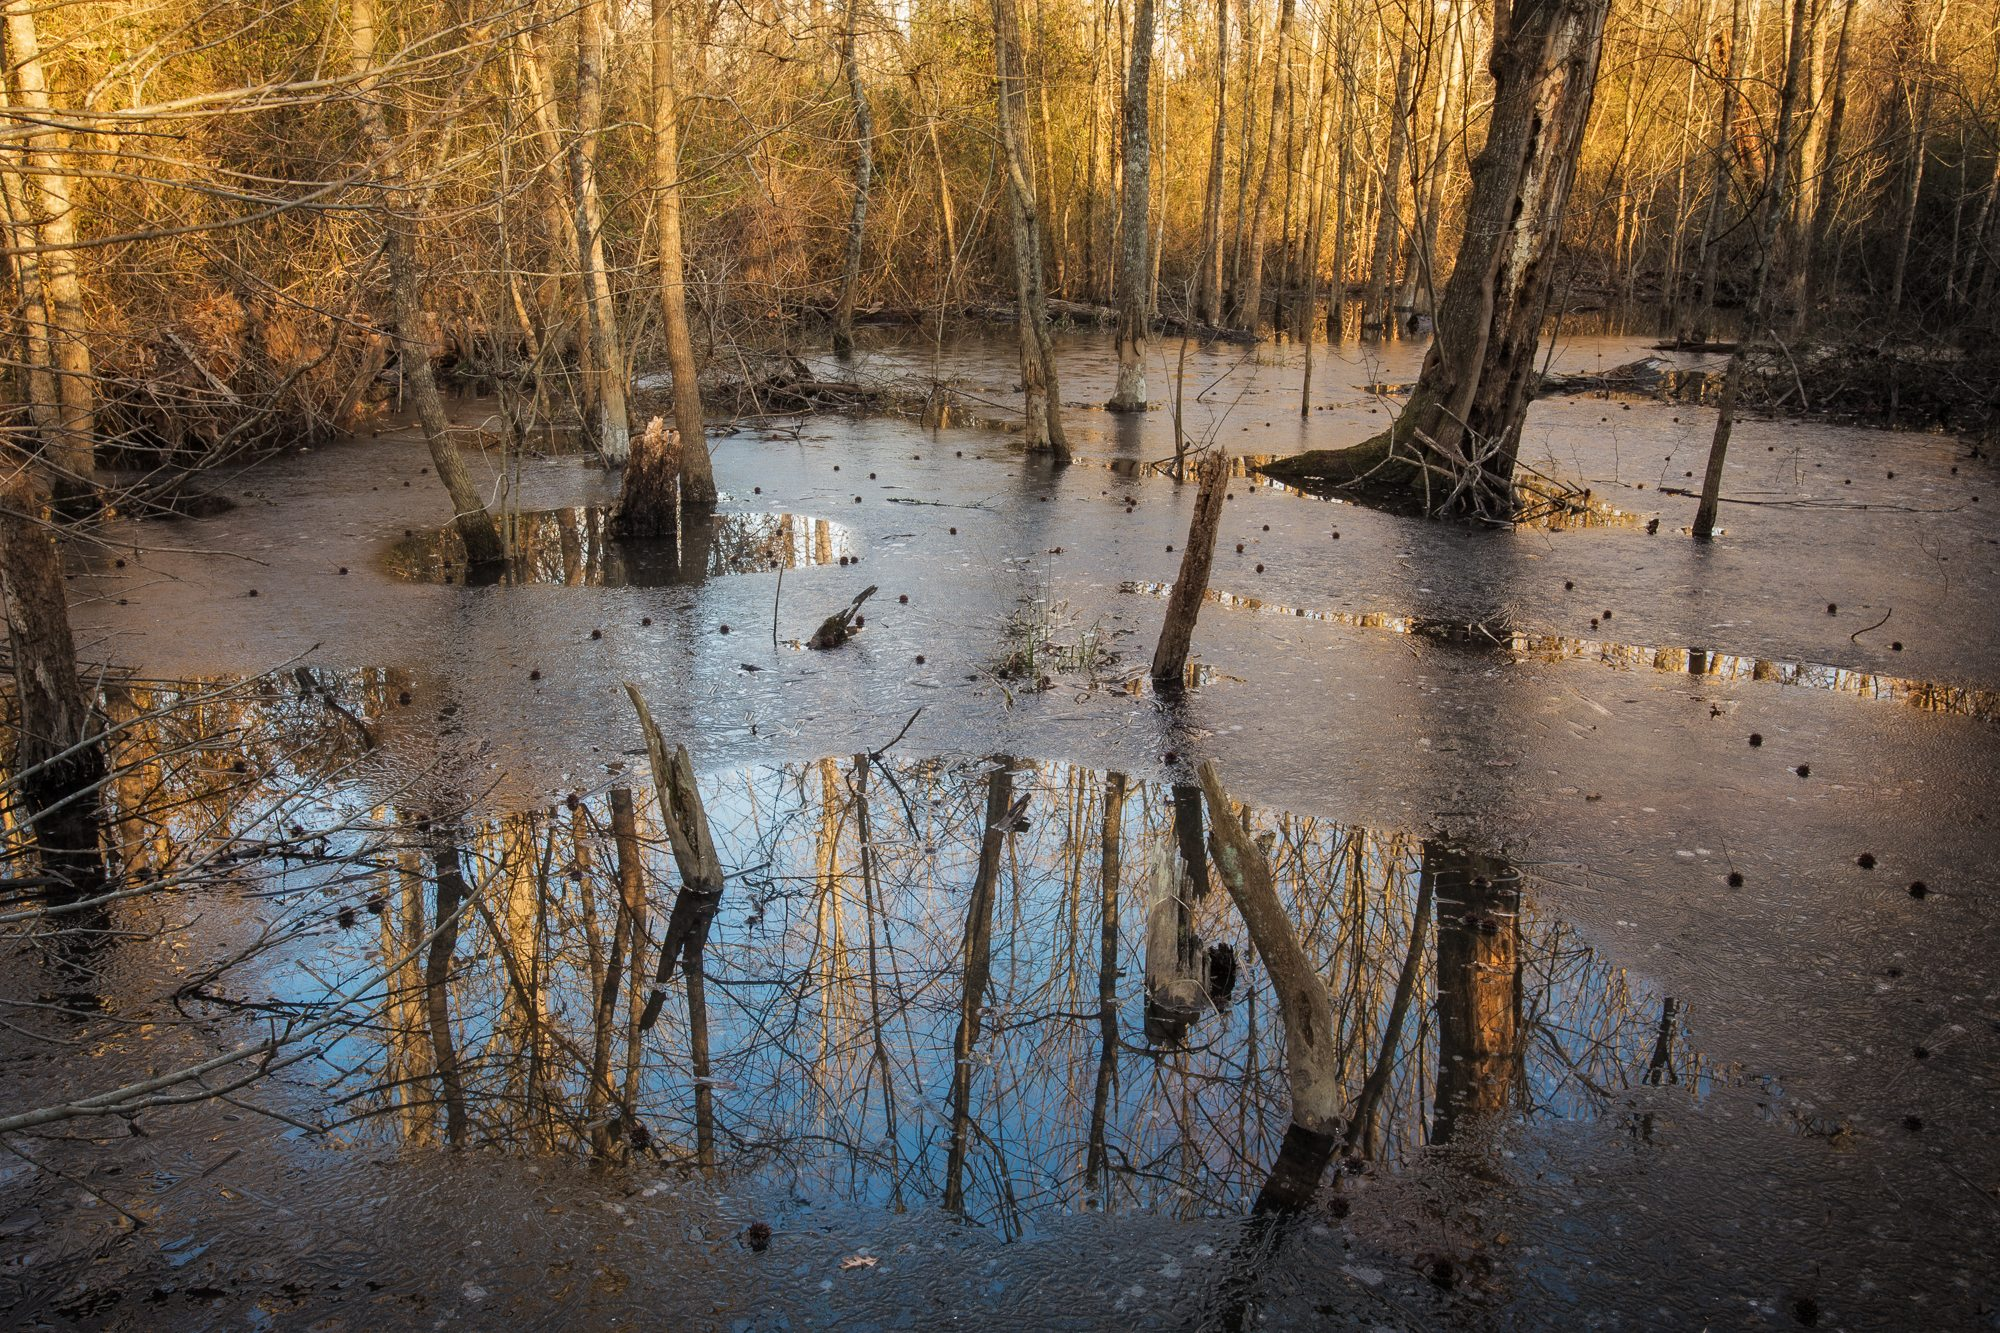 Wetland forests provide many ecosystem services like water filtration and carbon storage.